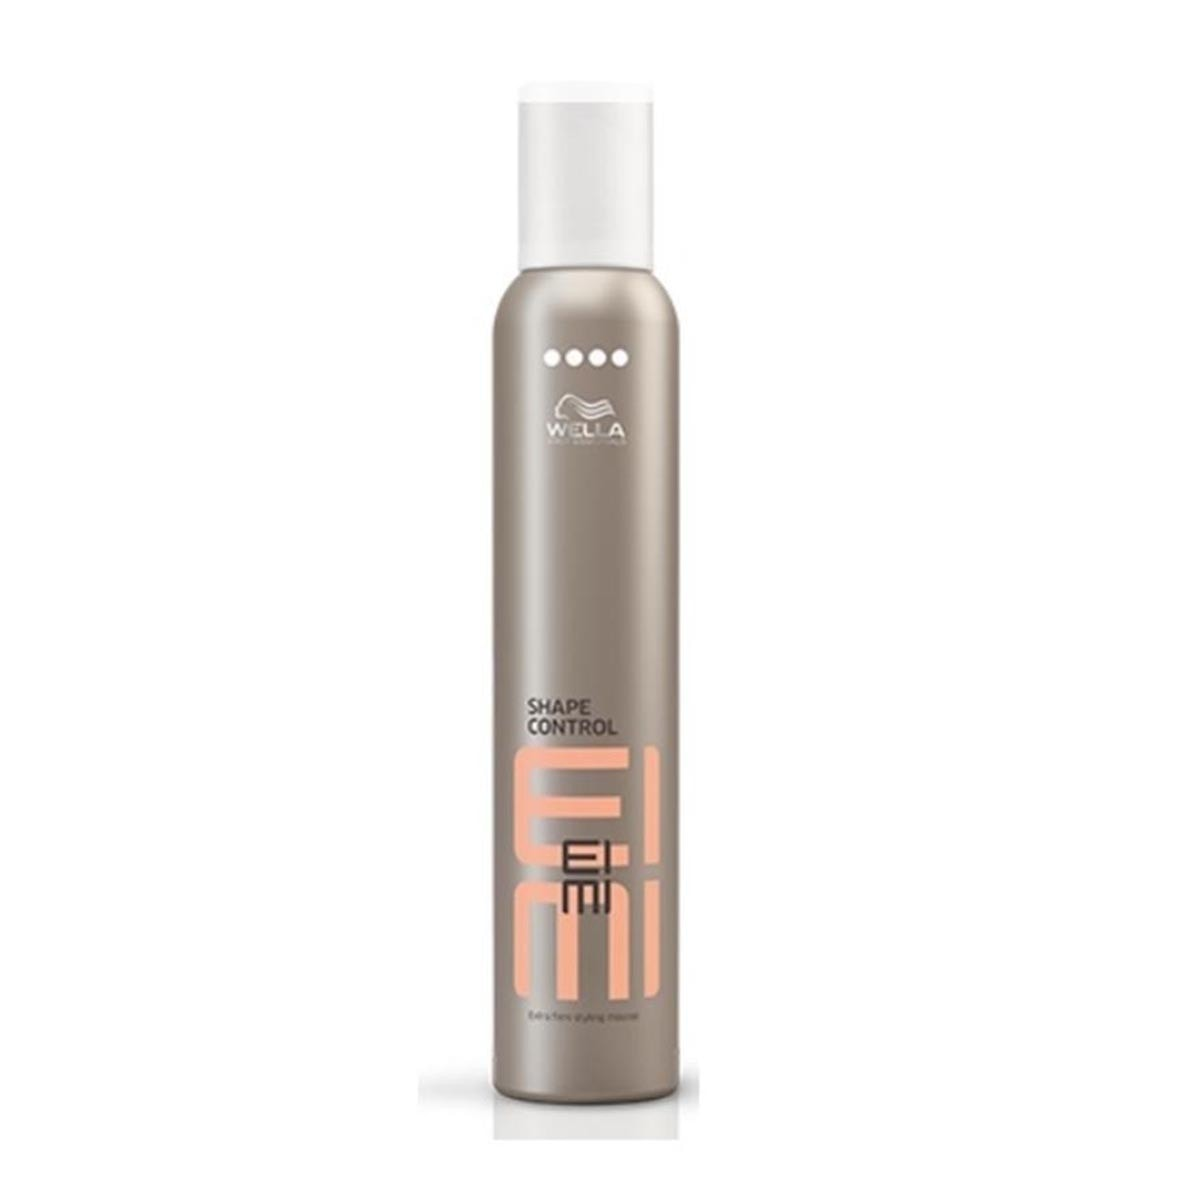 Wella Shape Control Styling Mousse Wet - 500ml